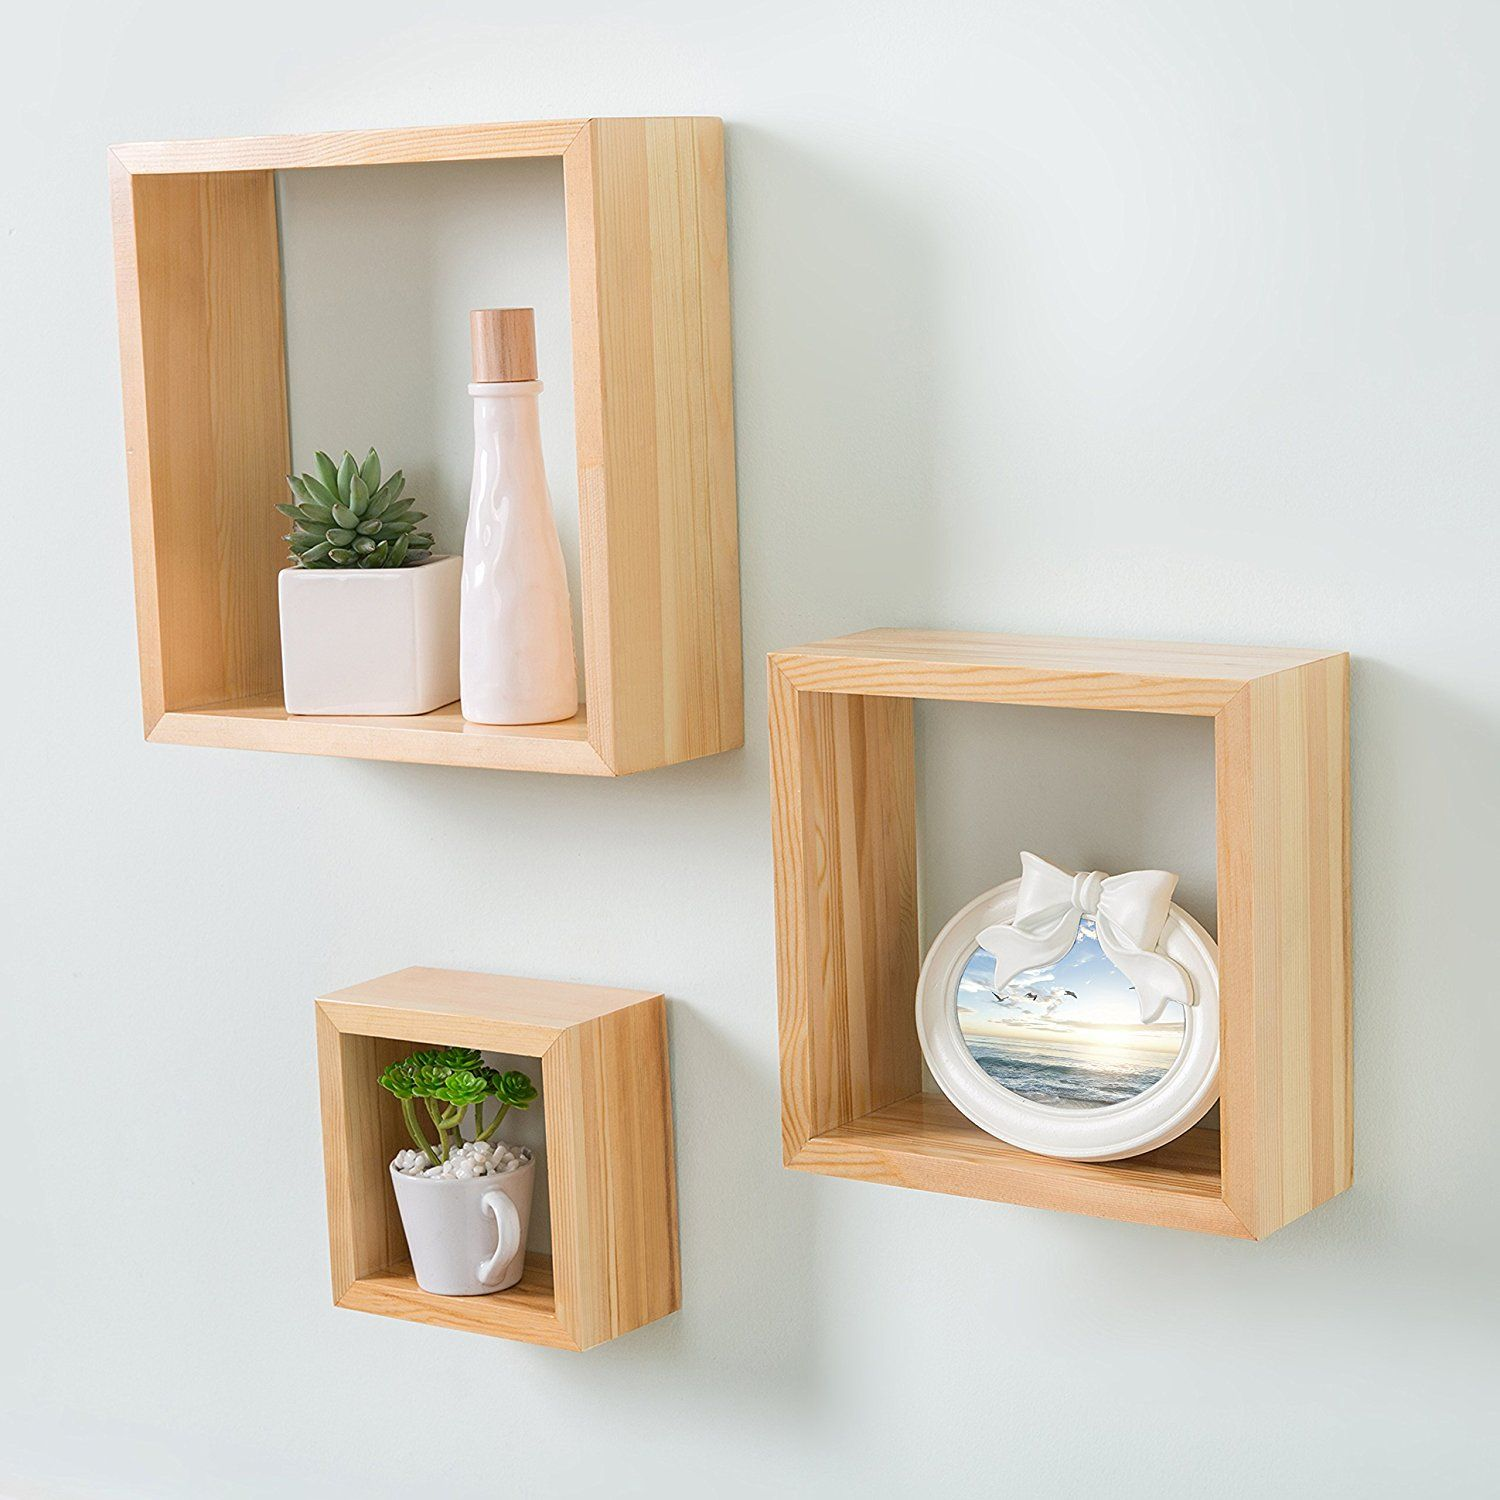 set natural blonde wood wall mounted shadow boxes floating display shelf square shelves kitchen island narrow space kmart pool noodle reclaimed pub table small computer desk ikea